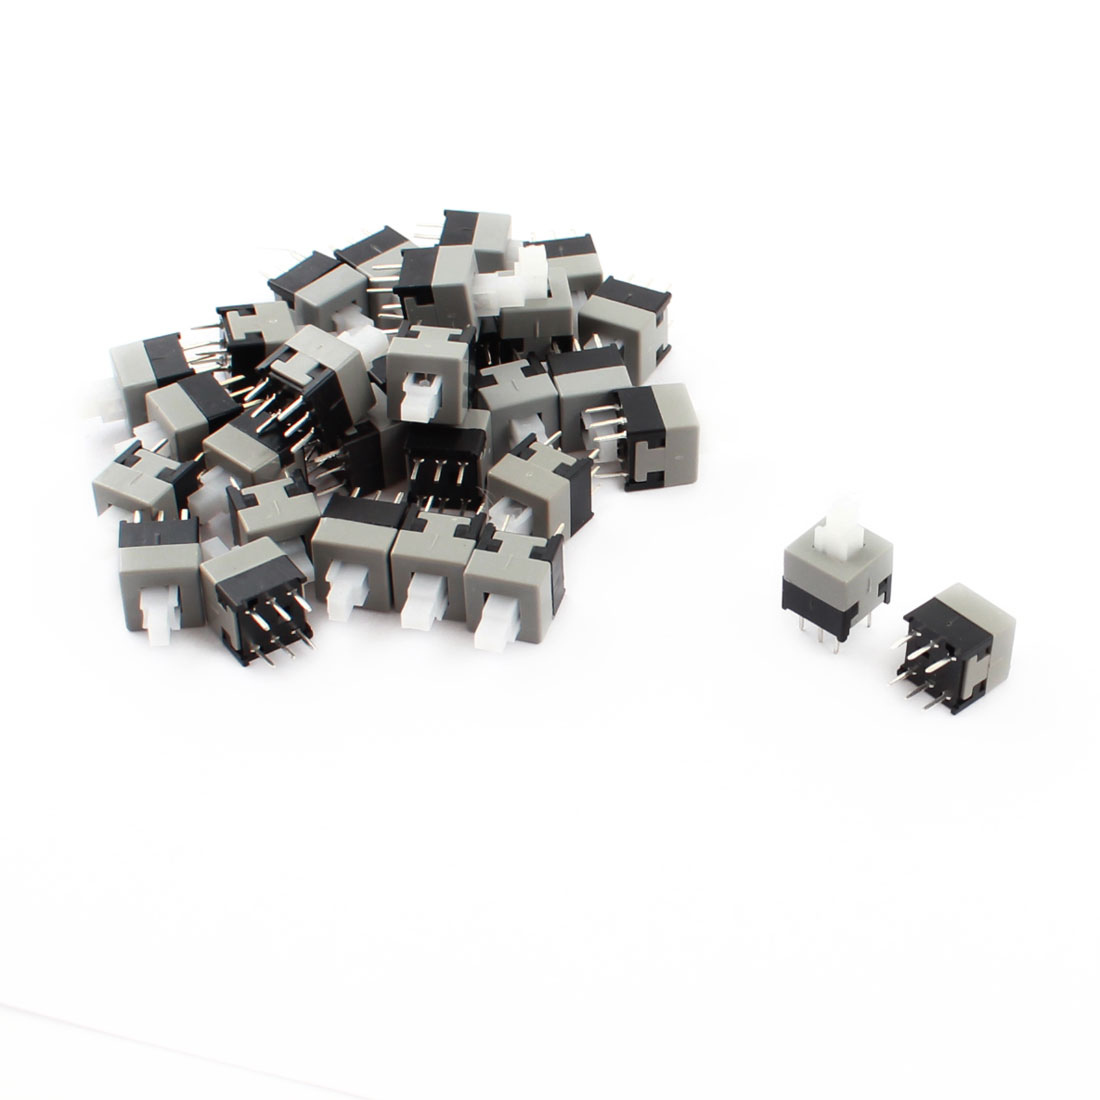 30PCS 13mmx8.5mmx8.5mm DIP Through Hole Push Button Locking Tactile Tact Switch